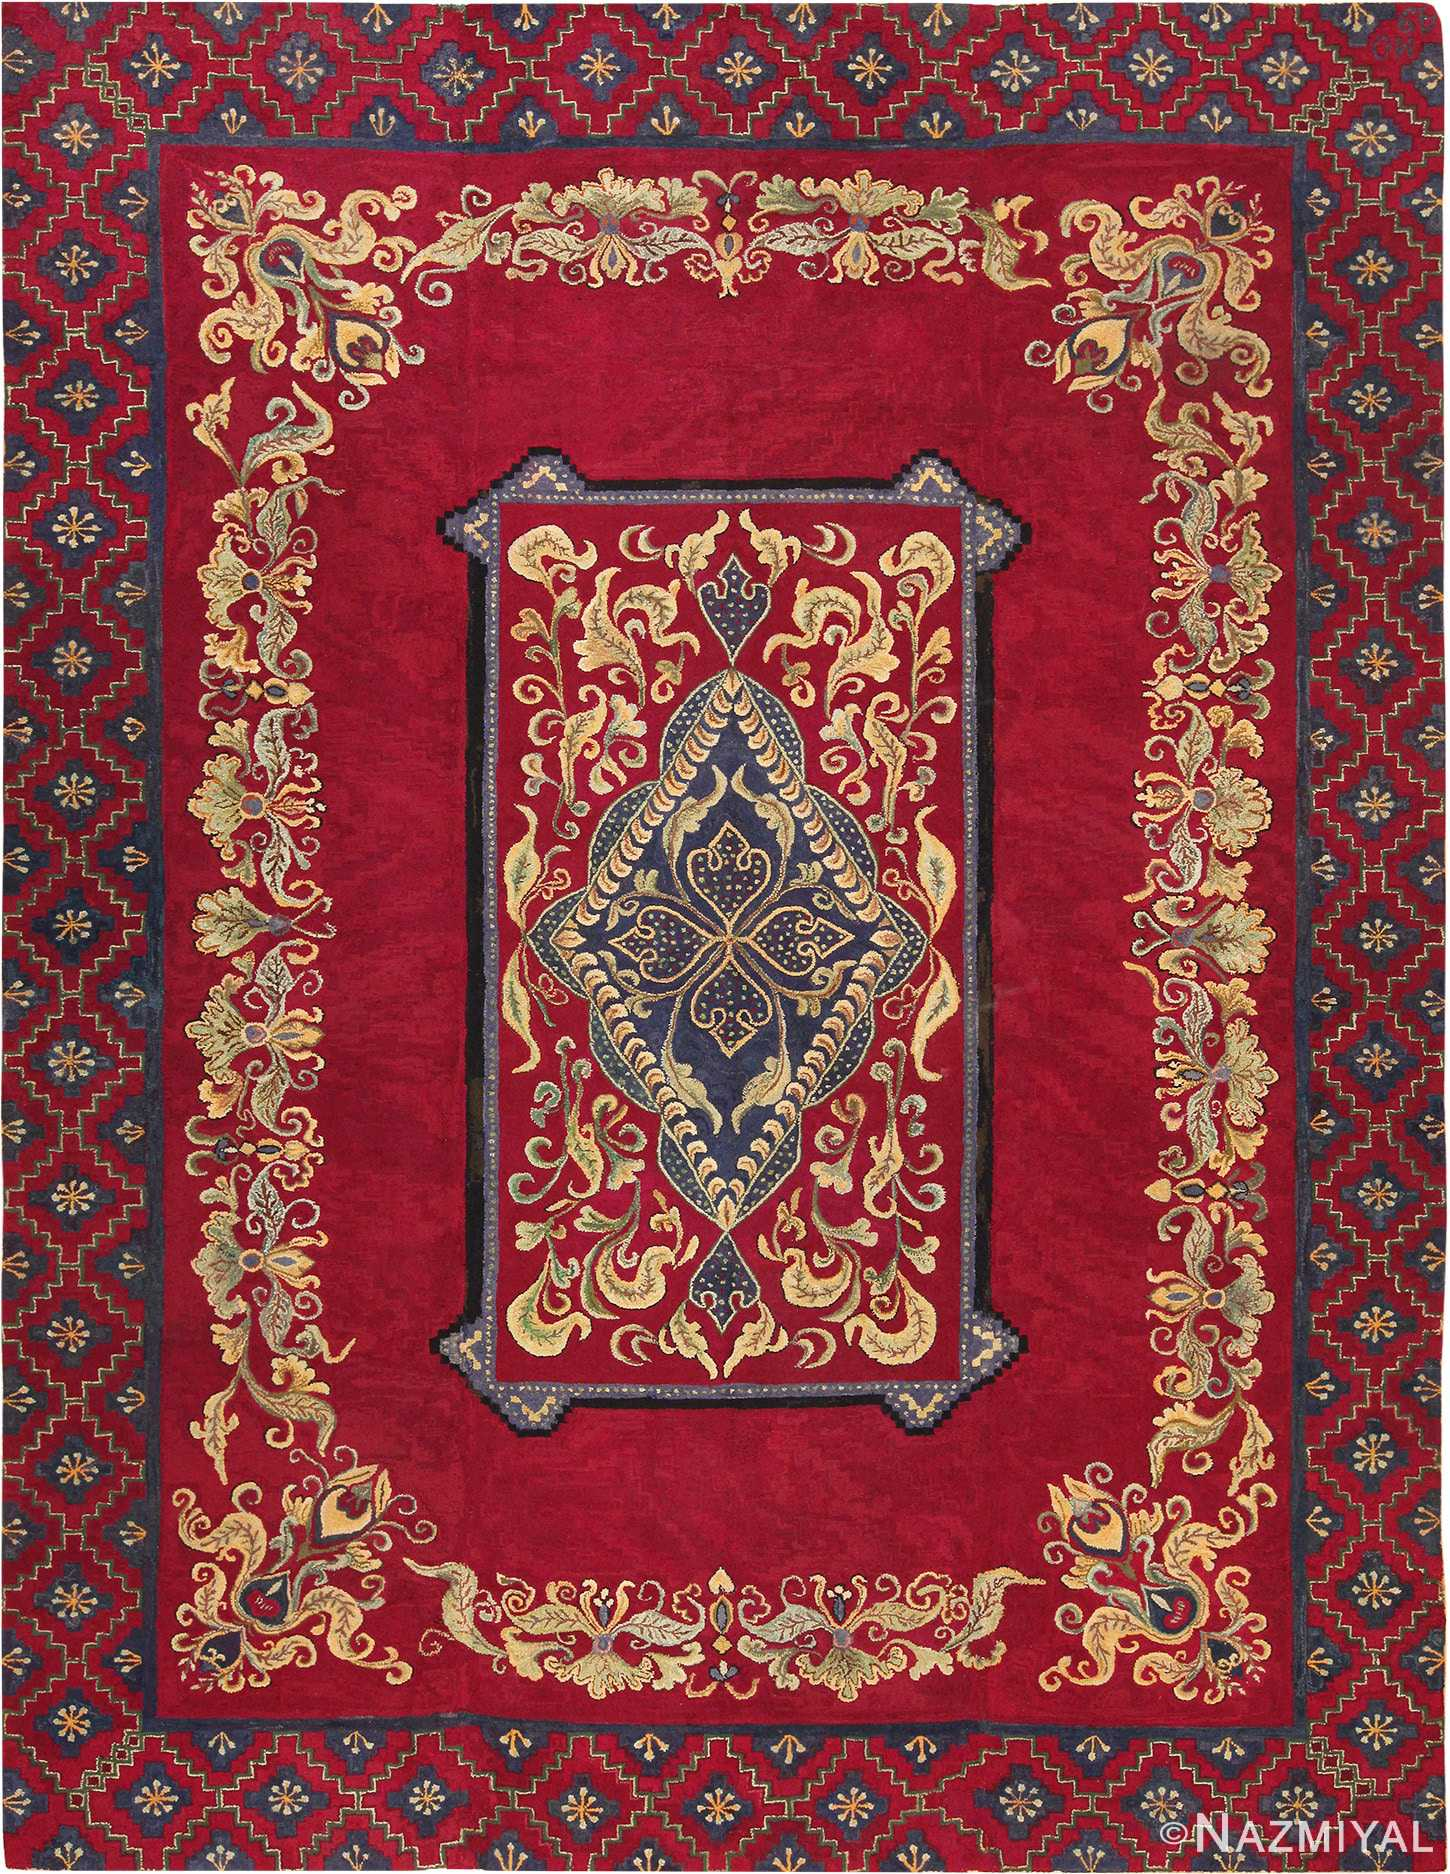 Hooked Rugs Hook Rugs Antique American Hooked Carpet